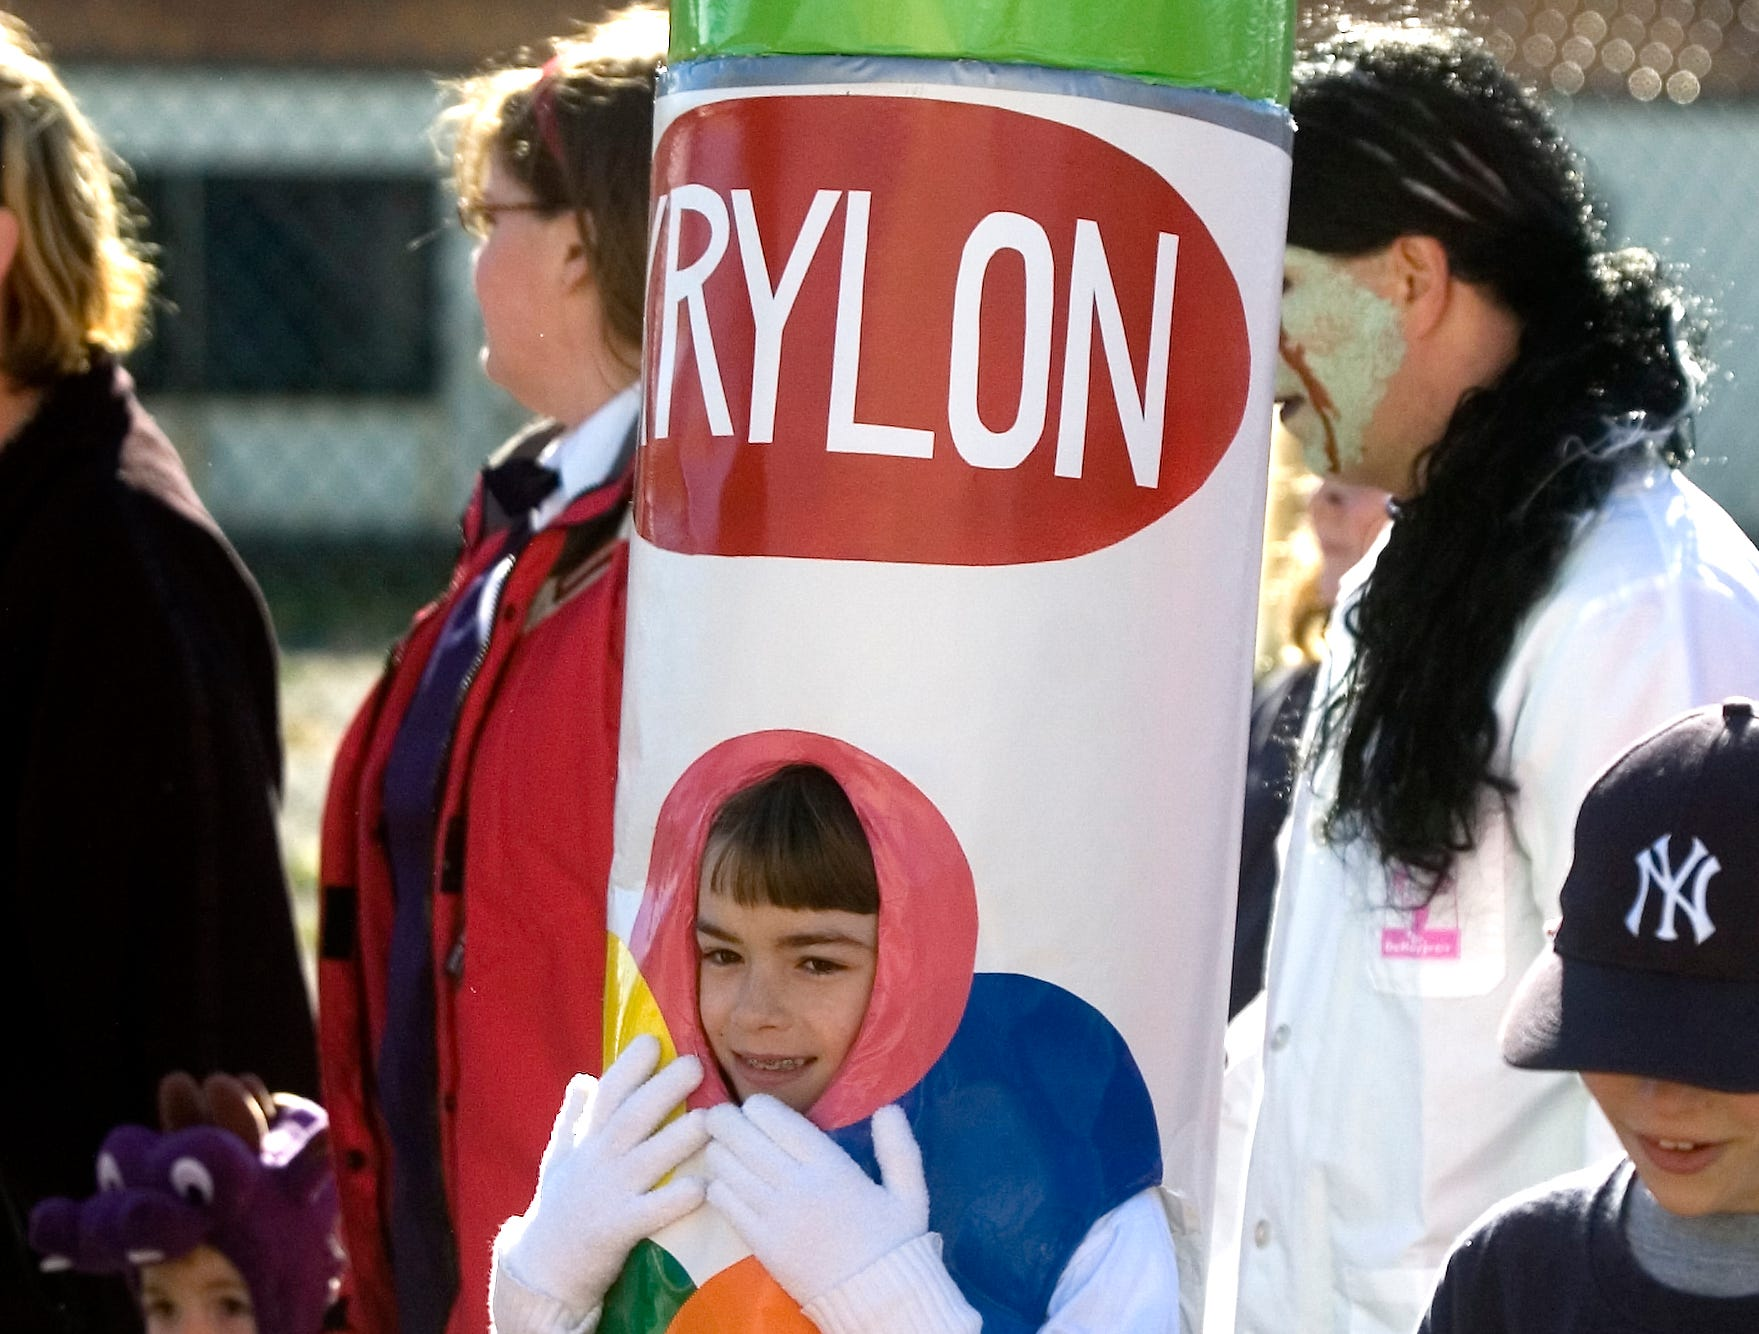 2006: Lucy Wales, 10, of Endicott dons a lime green spray-paint can costume for the annual Halloween parade Sunday at the West Endicott Park in Endicott.